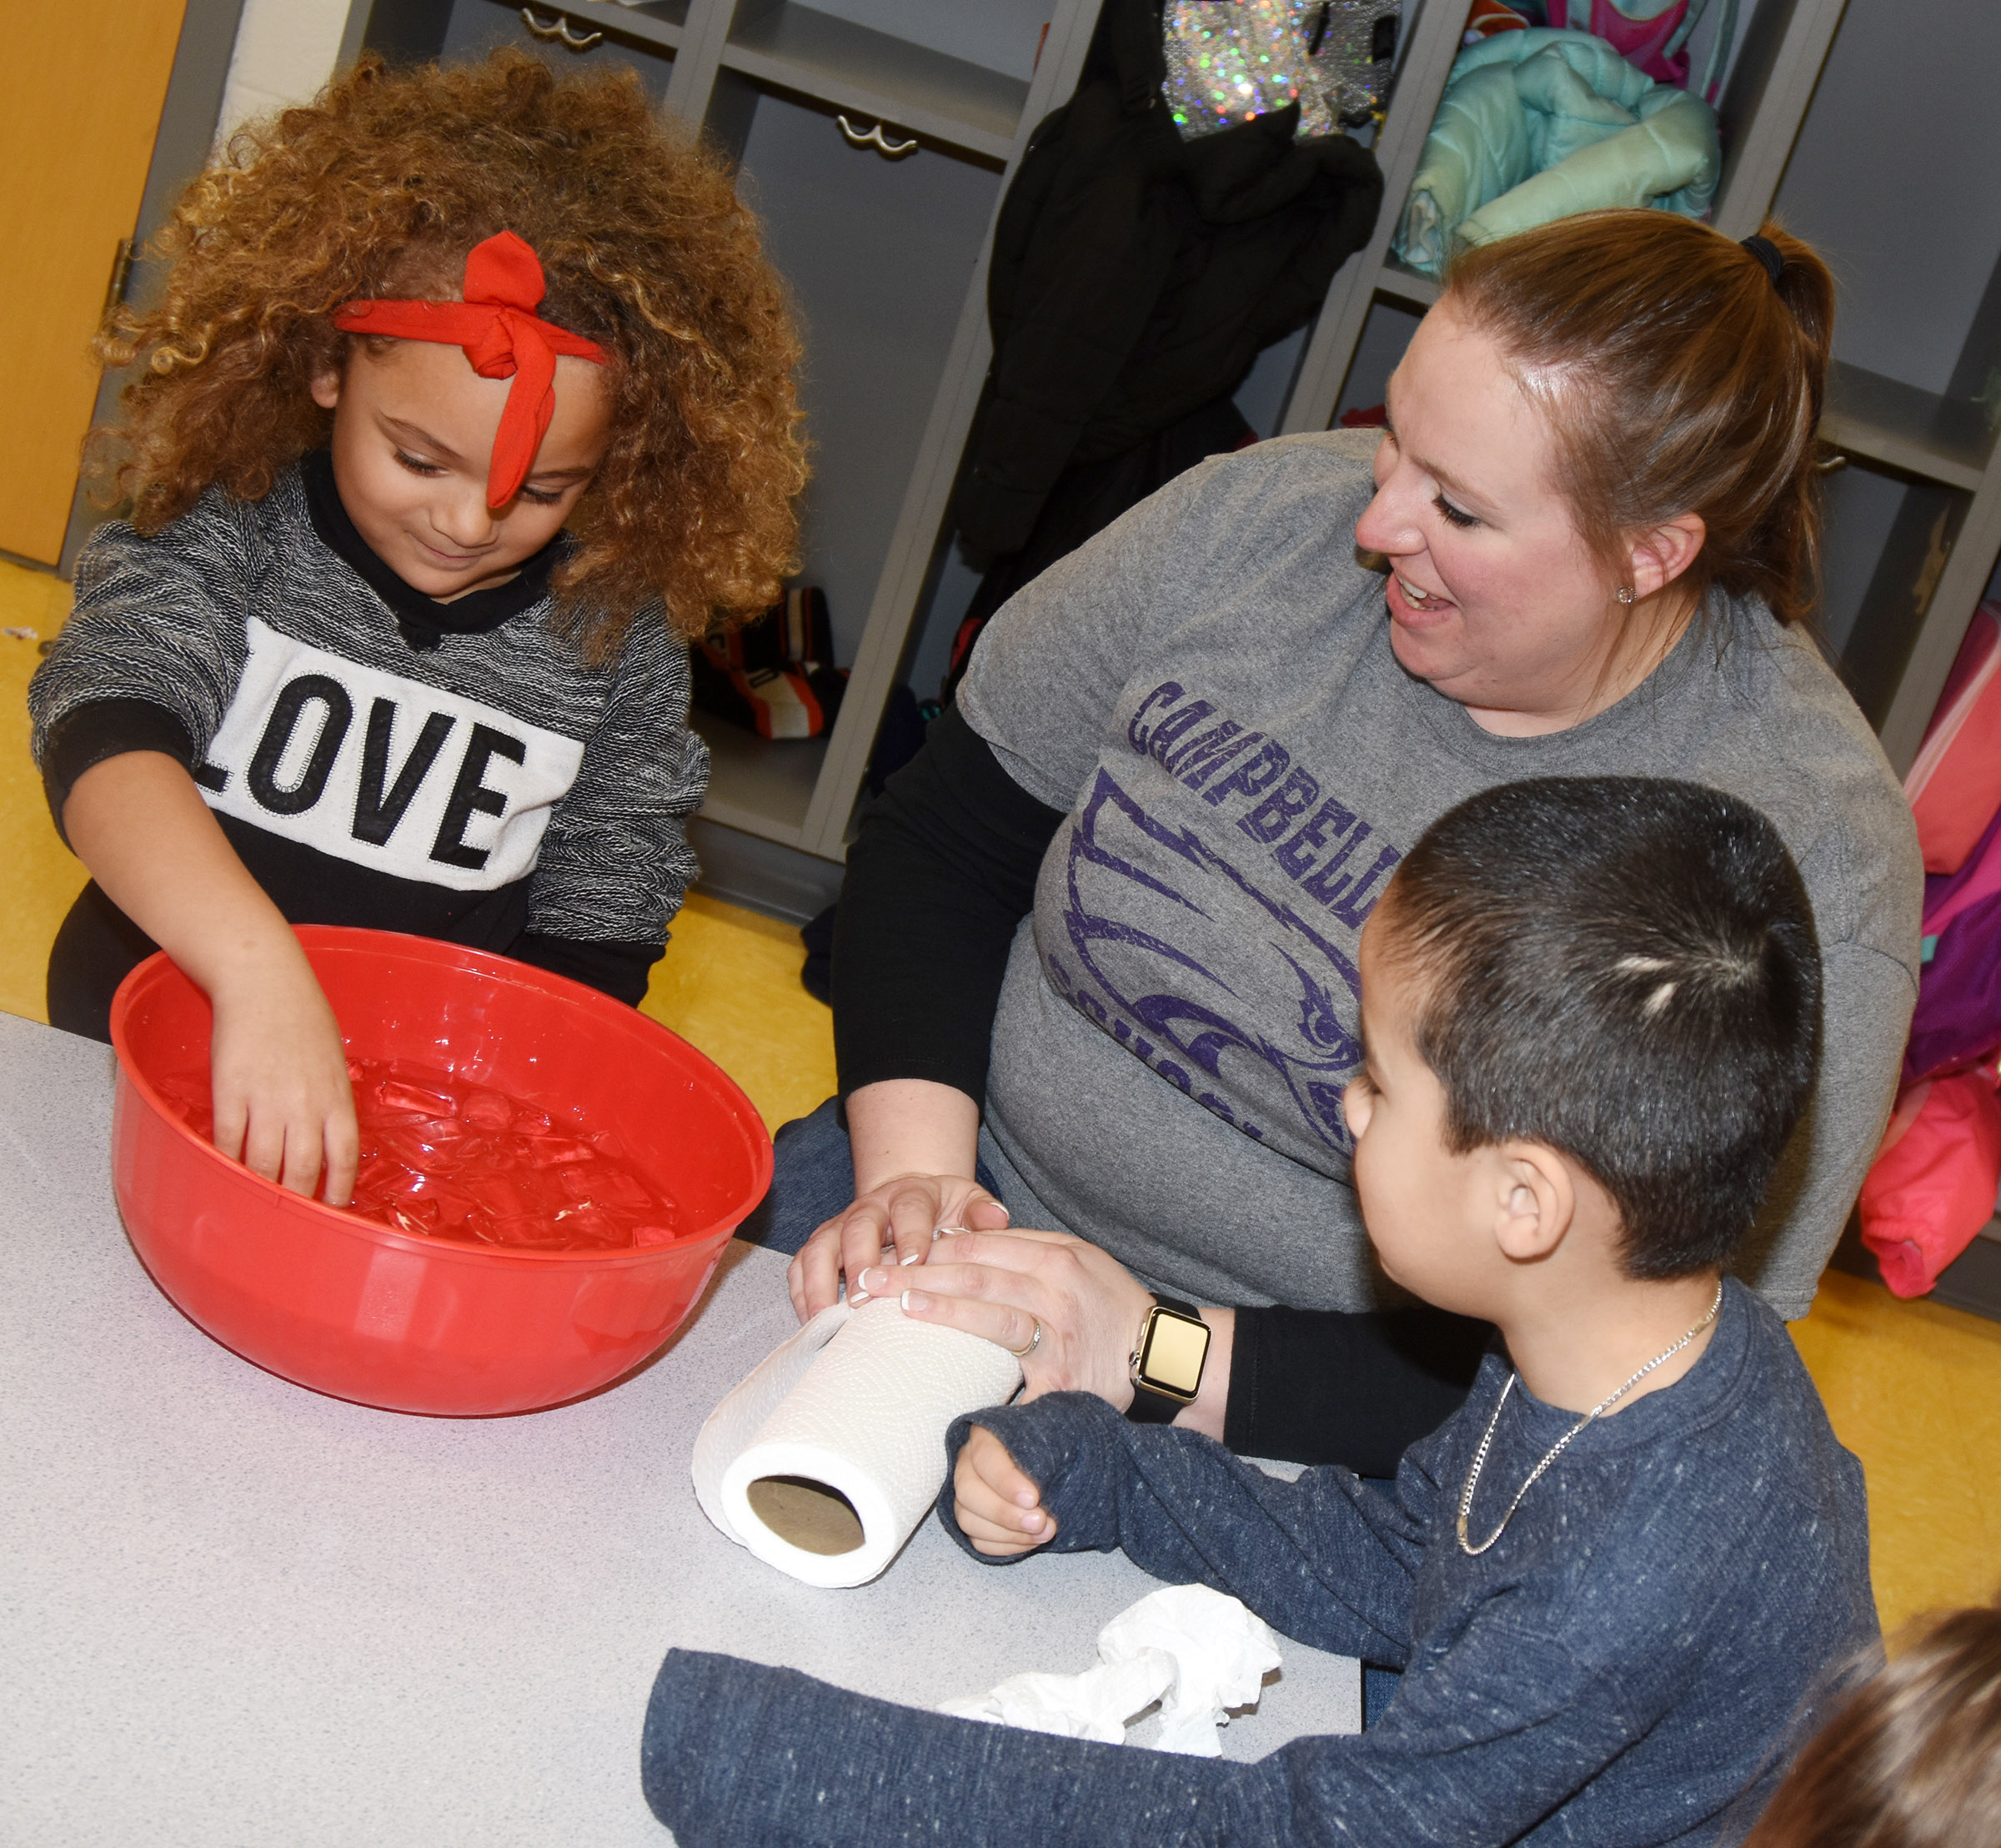 CES preschool student Layla Barbee places her hand inside ice water to see how cold it is, as classmate Minh Turdo and teacher Julie Shelton watch.